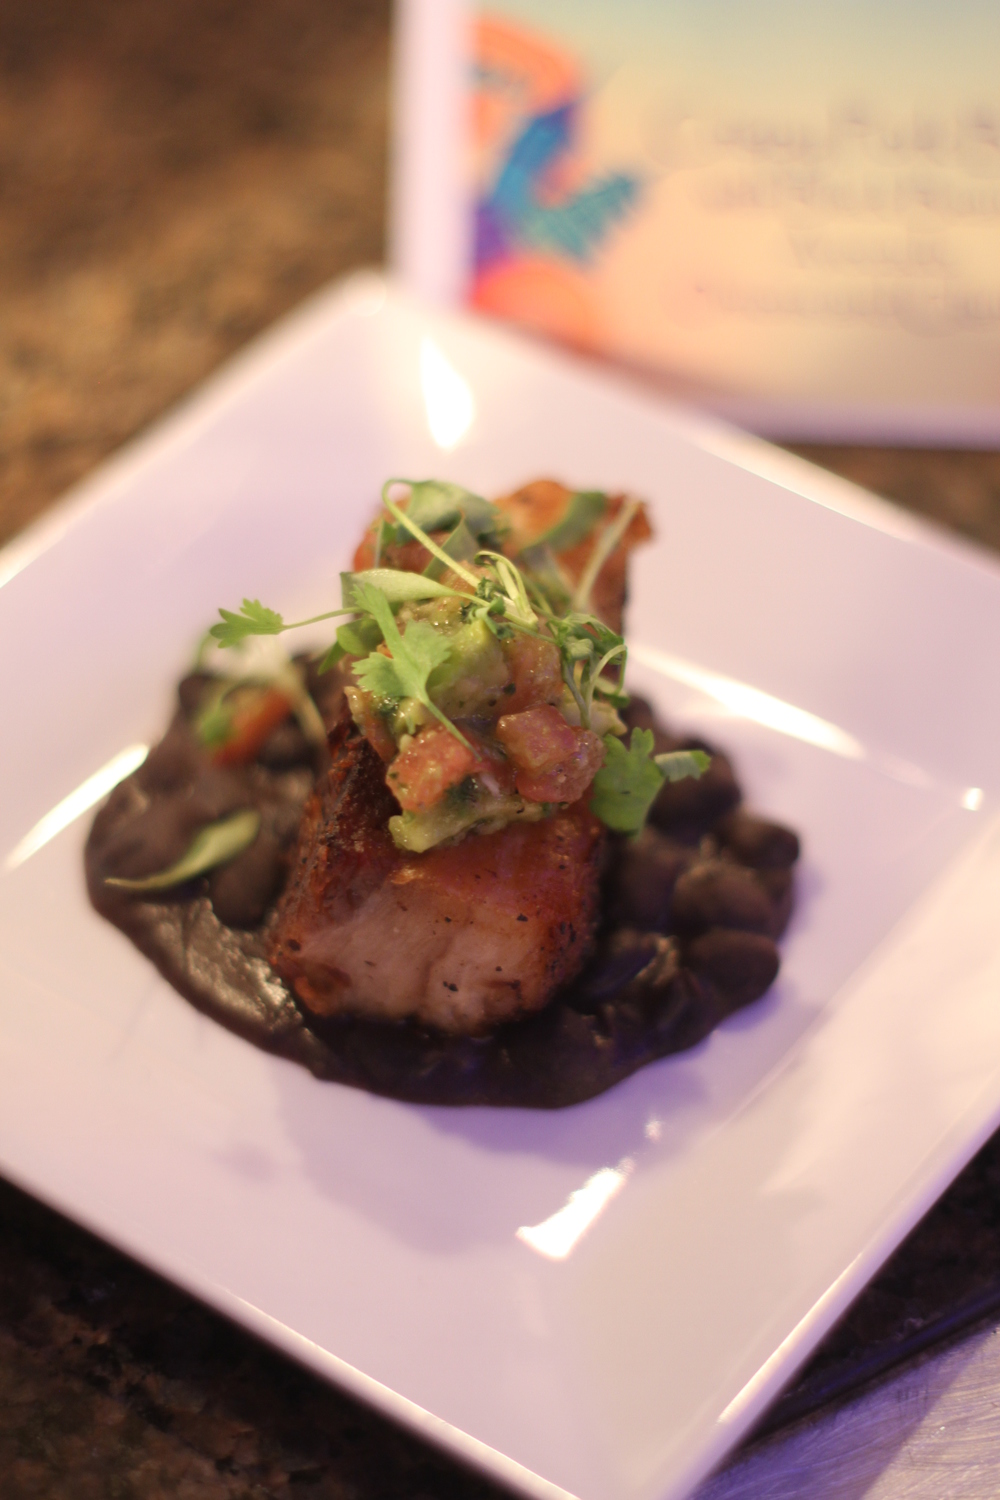 Crispy pork belly with black beans and avocado.